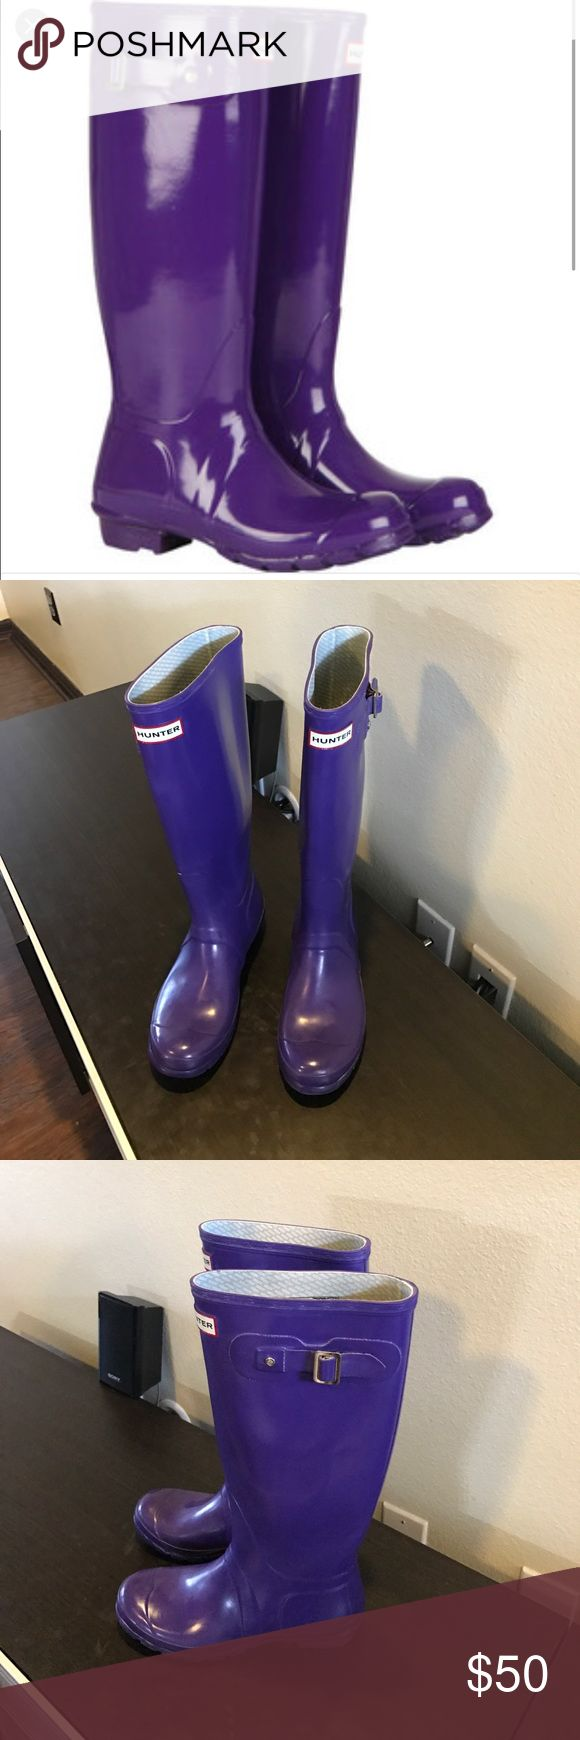 Authentic Hunter Boots purple rubber rain boots 7 Authentic Hunter Boots tall purple rubber rain boots 7 Euro 38 good condition light wear light scuffs light wear on bottom heels and insole have light wear Hunter Boots Shoes Winter & Rain Boots